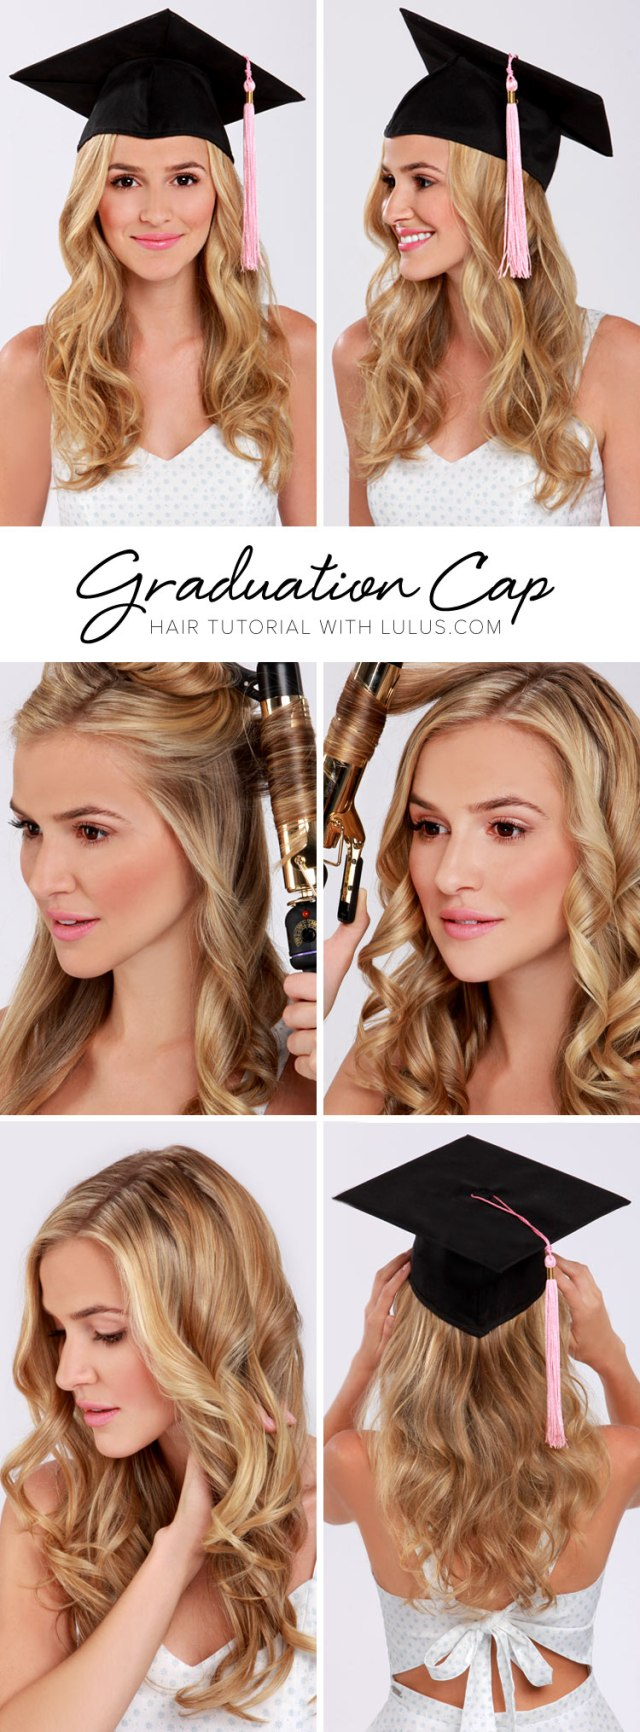 lulus how-to: graduation cap hair tutorial - lulus